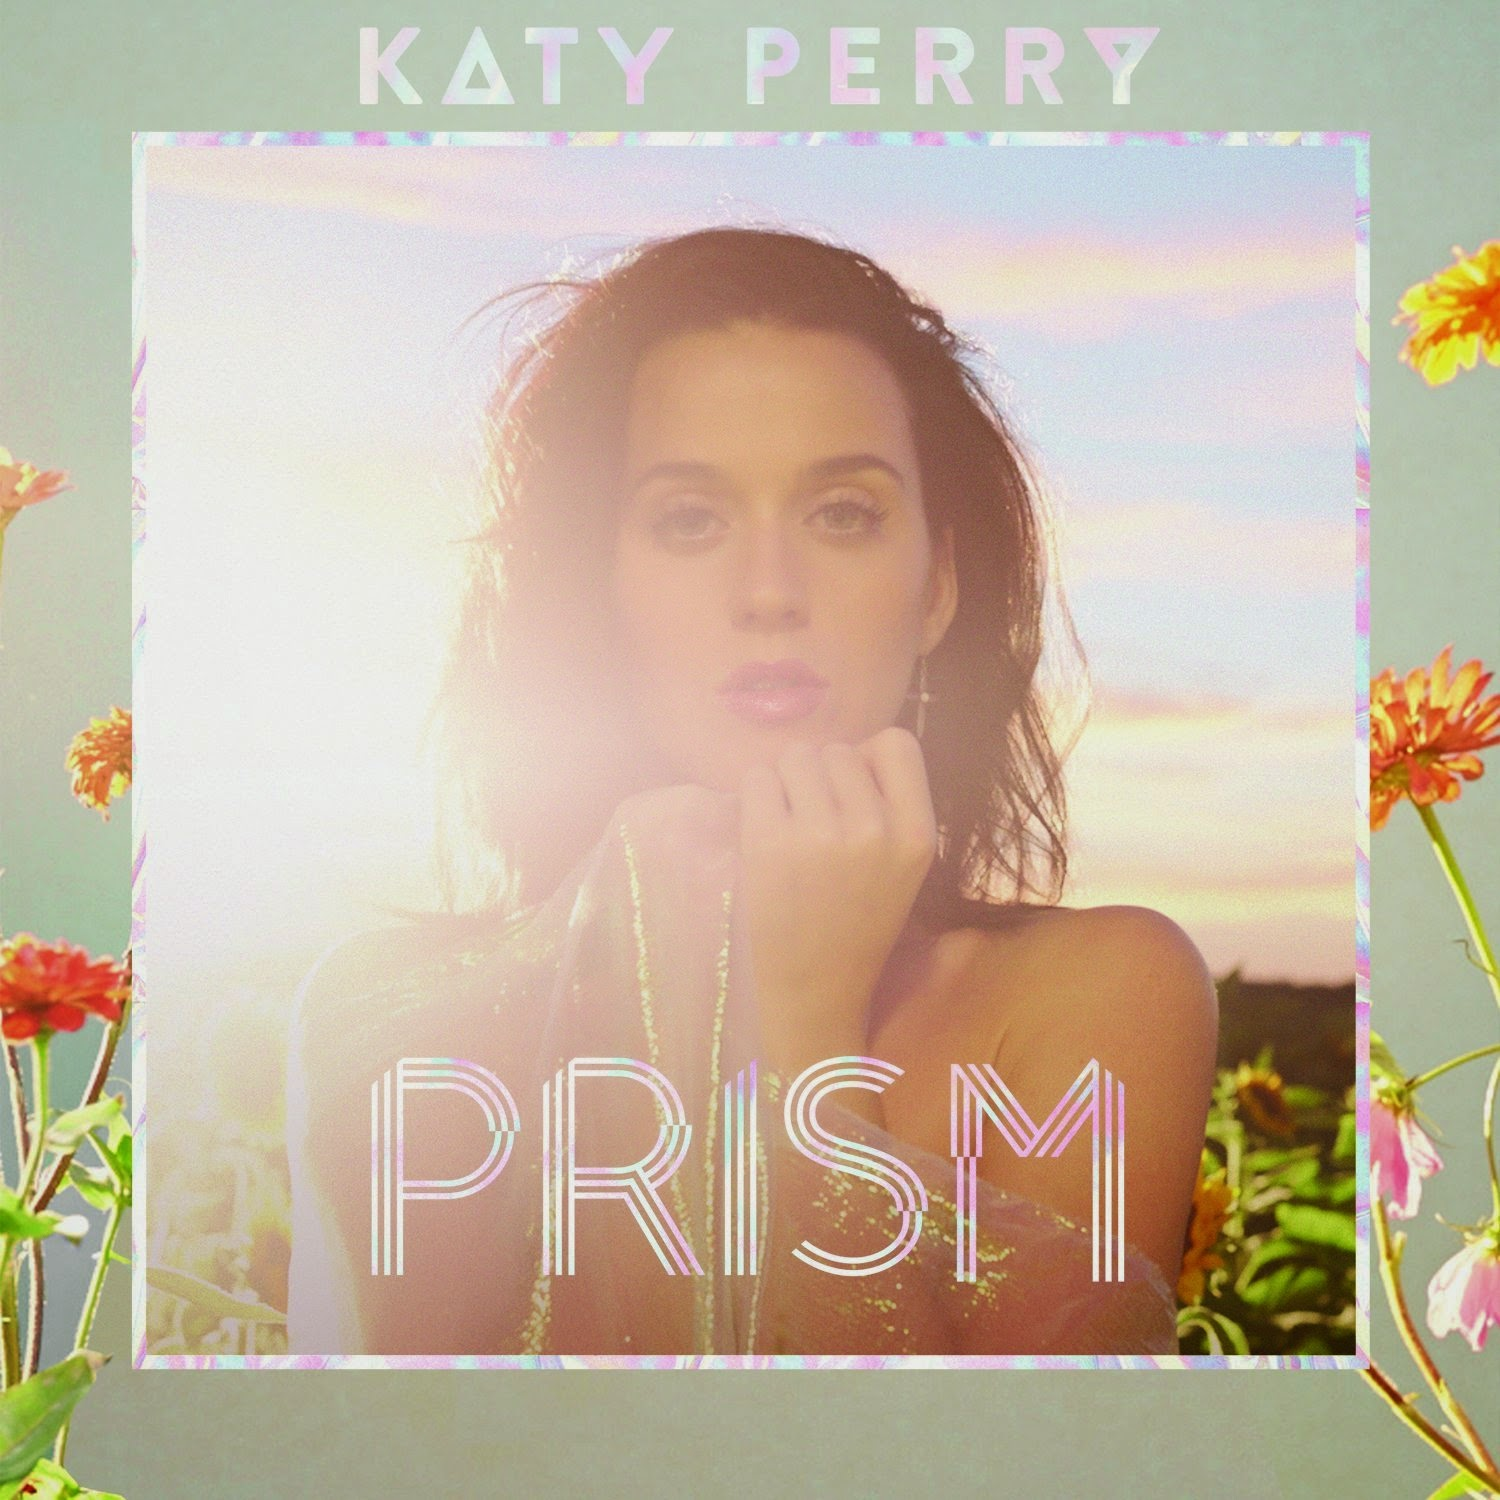 Katy Perry's Prism Album Free